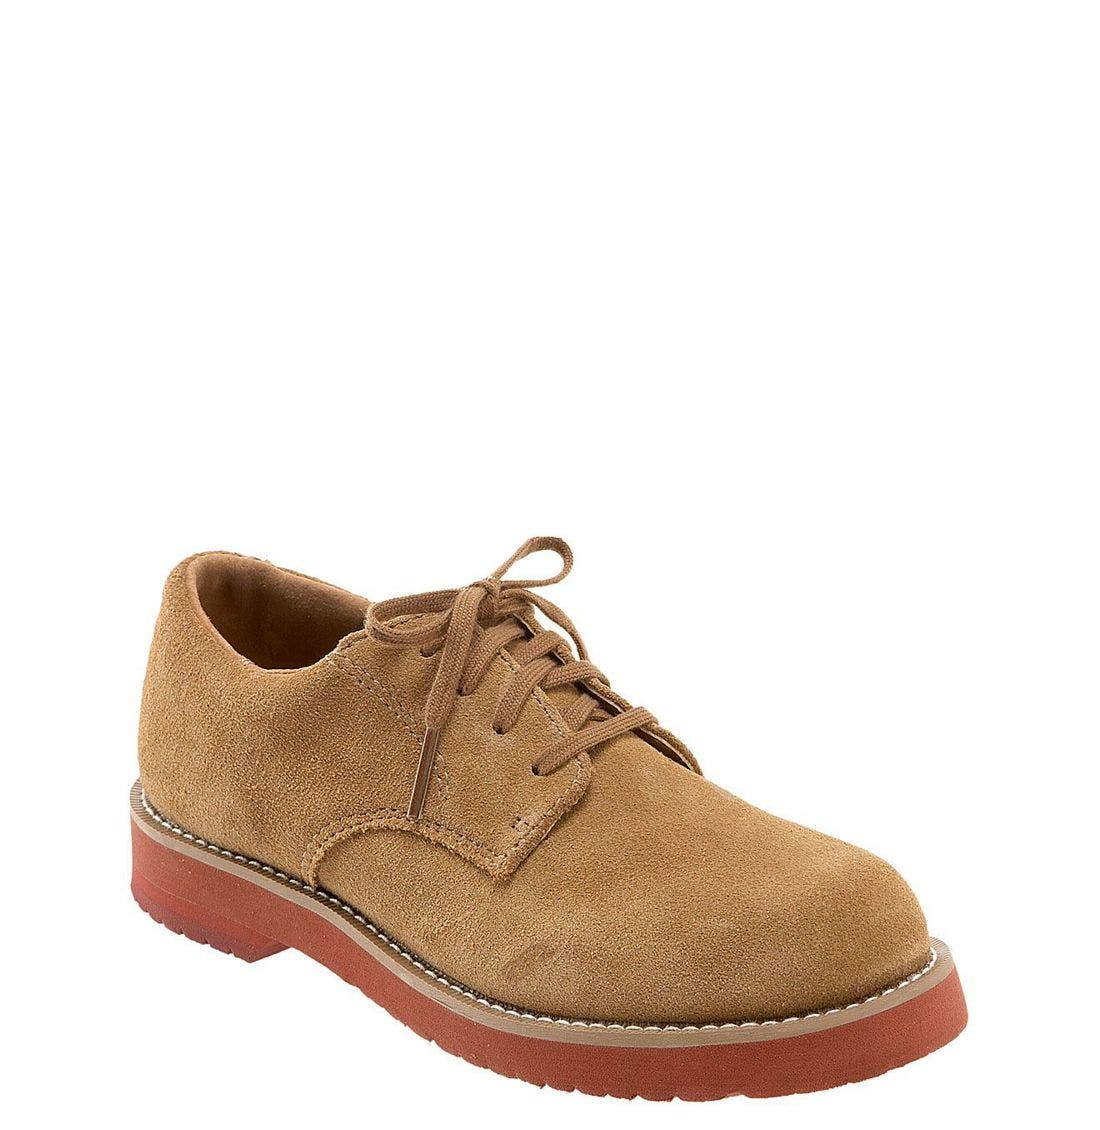 SPERRY KIDS 'Tevin' Oxford, Main, color, DIRTY BUCK